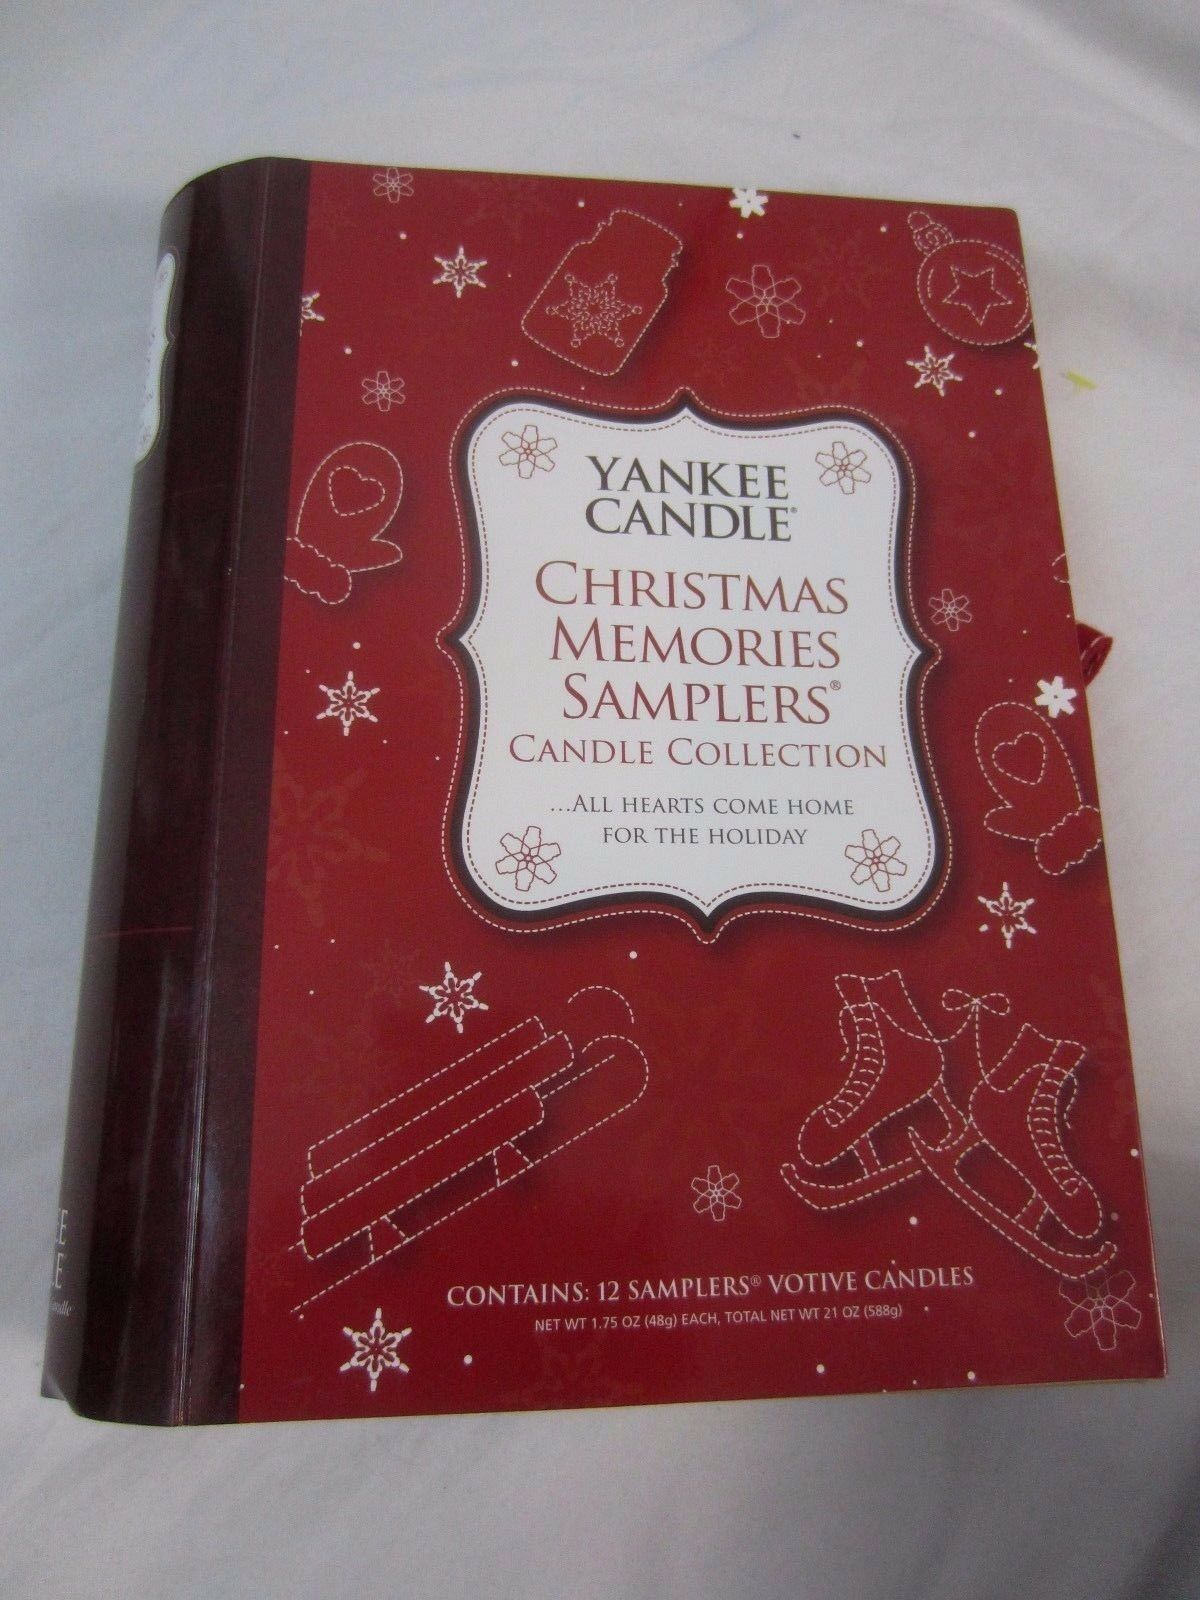 Yankee Candle Christmas Memories Samplers Candle Collection Gift Set Set Set 12 Votive Y 5244cf